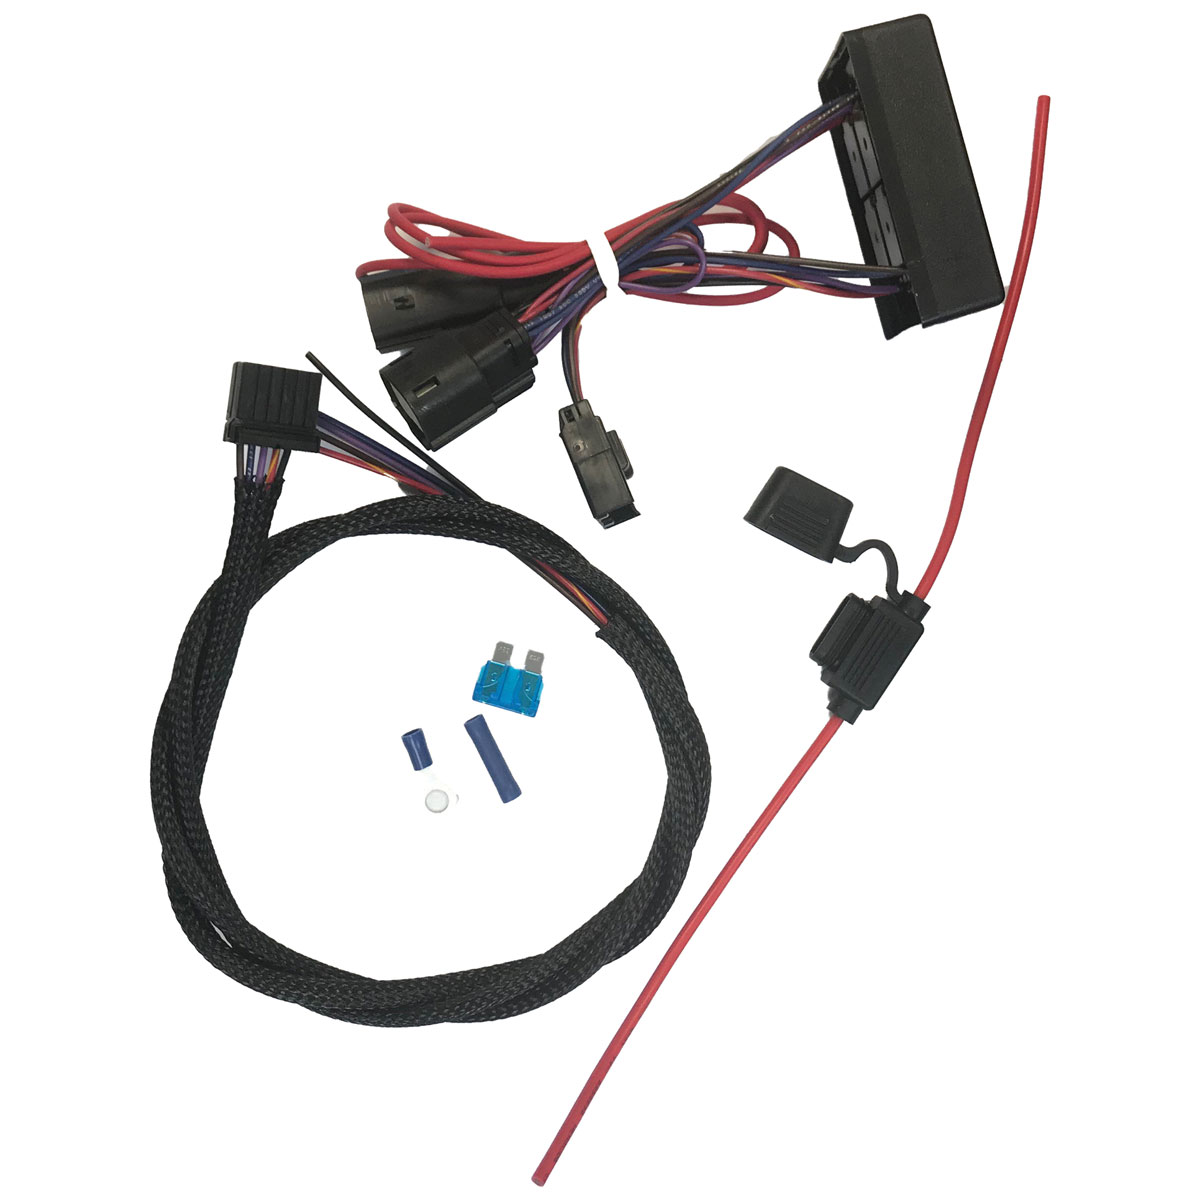 fbi trailer wire harness 6 pin molex connector 445 254 j p fbi trailer wire harness 6 pin molex connector